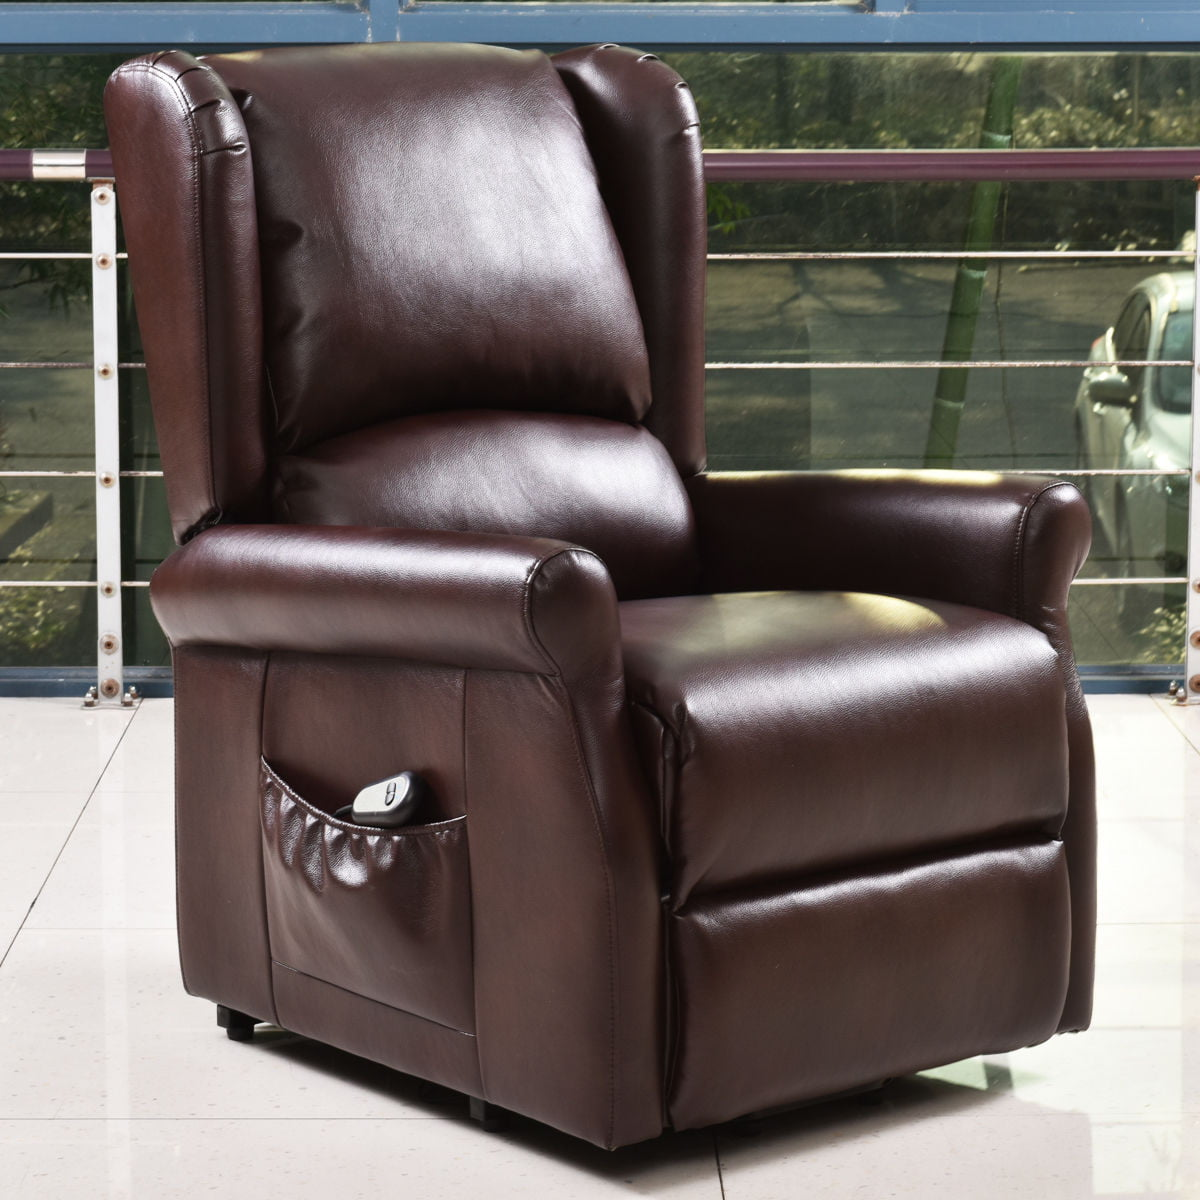 Costway Lift Chair Electric Power Recliners Reclining Chair Living Room Furniture by Costway